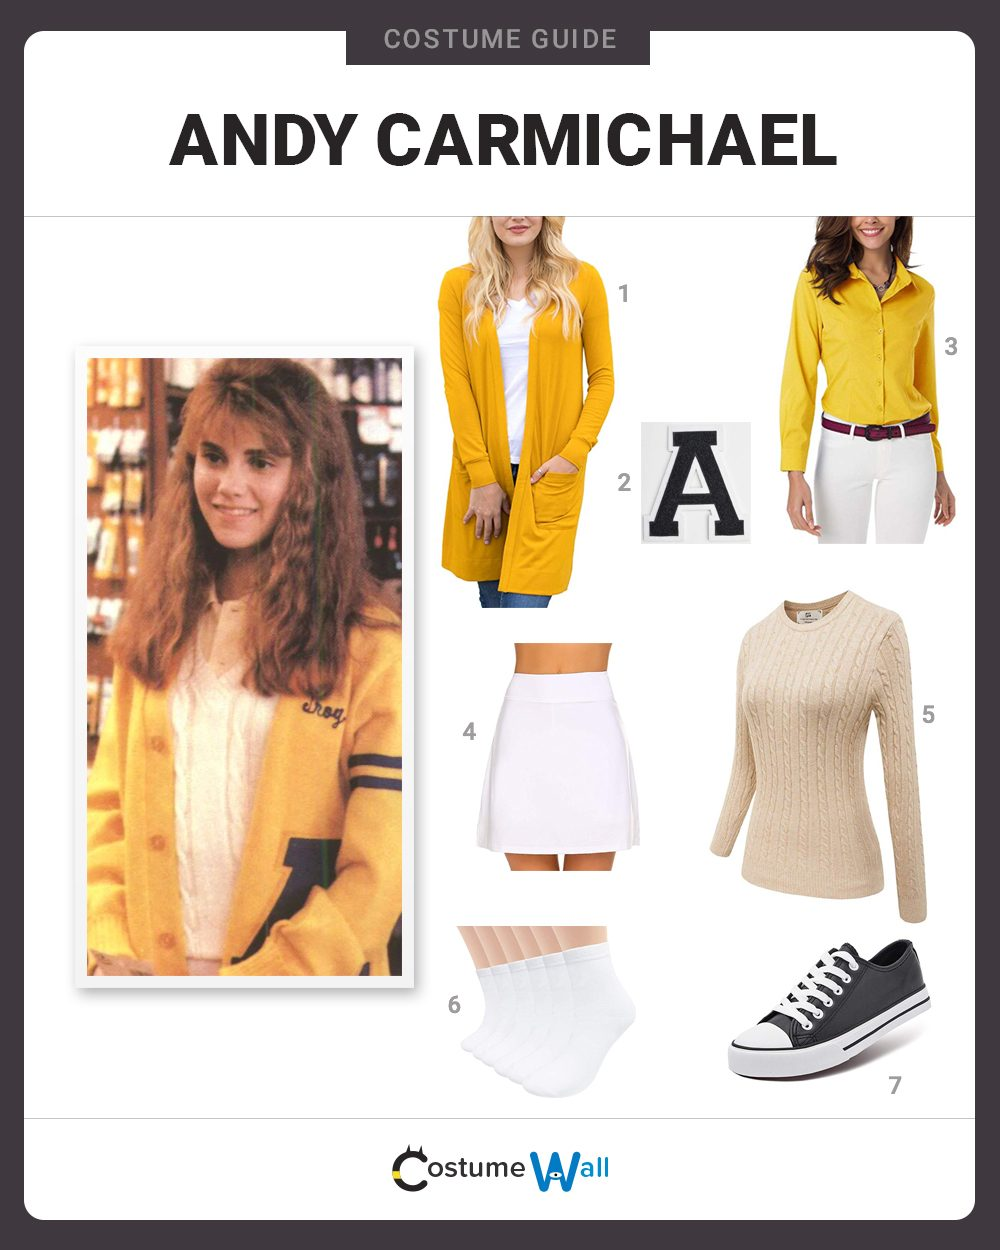 Andy Carmichael Costume Guide